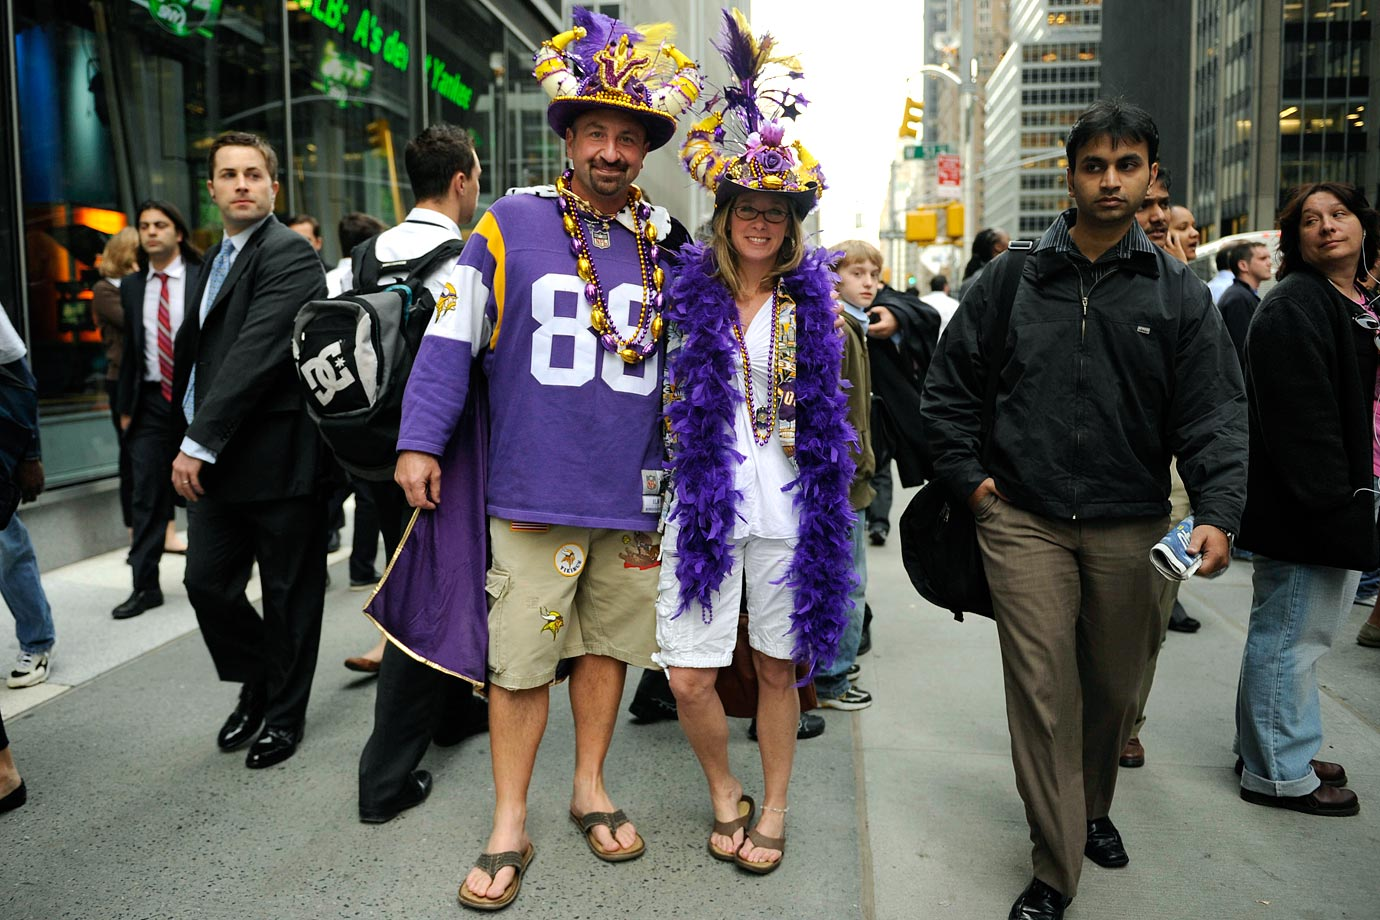 Minnesota Vikings fans in 2010.